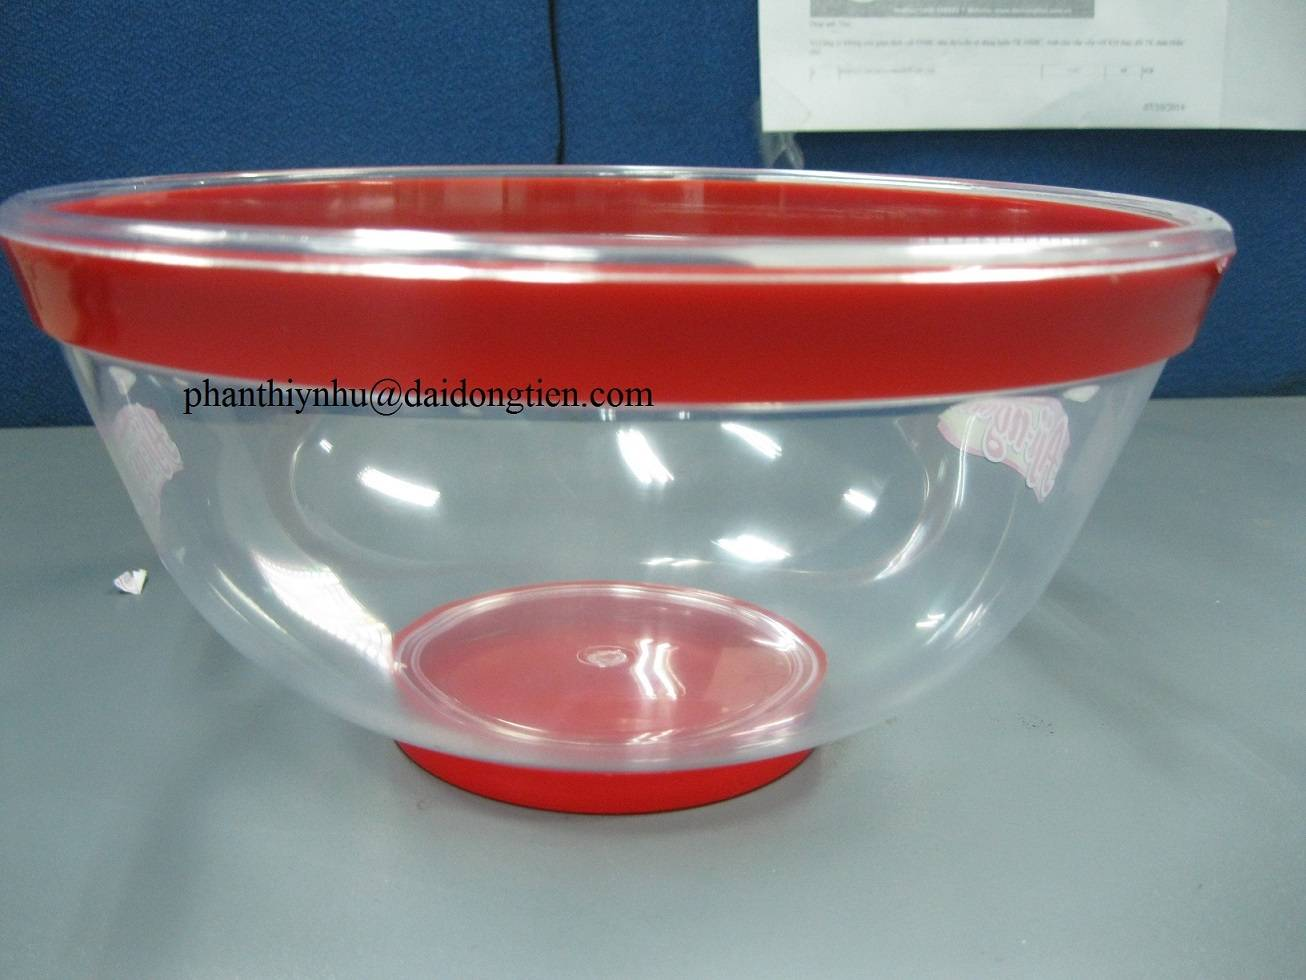 Supply 2 color plastic bowl - high quality